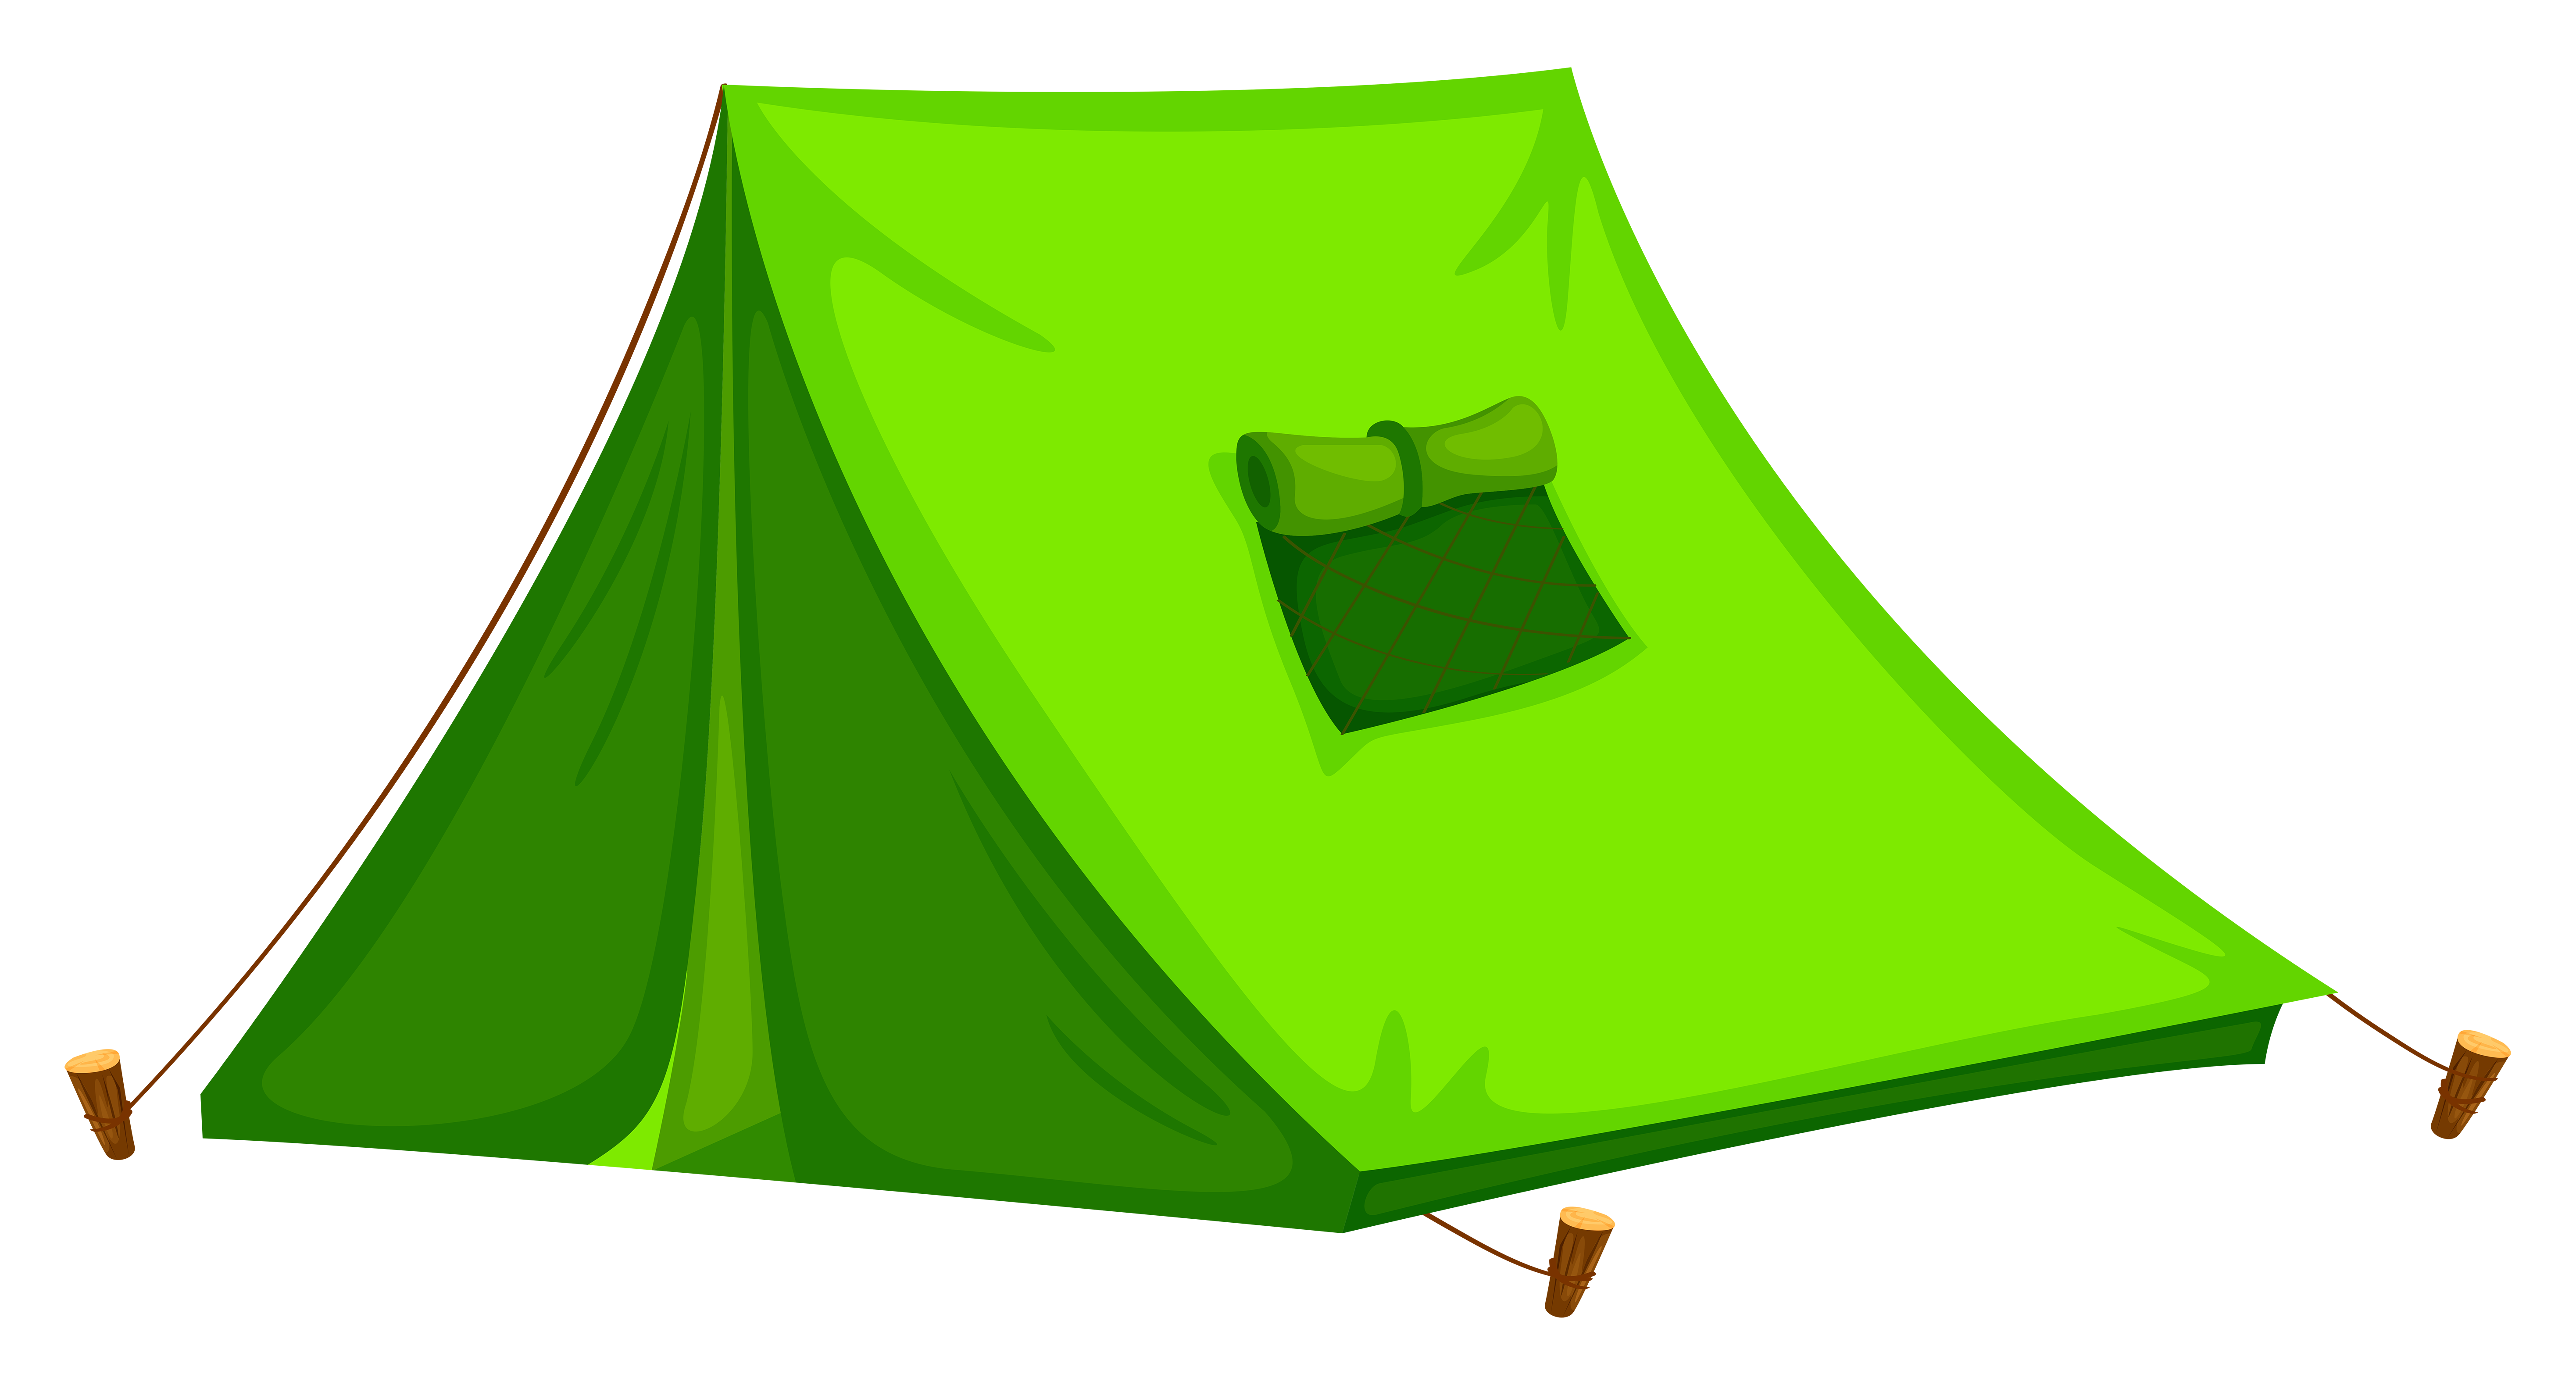 camping tent clipart at getdrawings com free for personal use rh getdrawings com tent clipart black and white tent clipart black and white